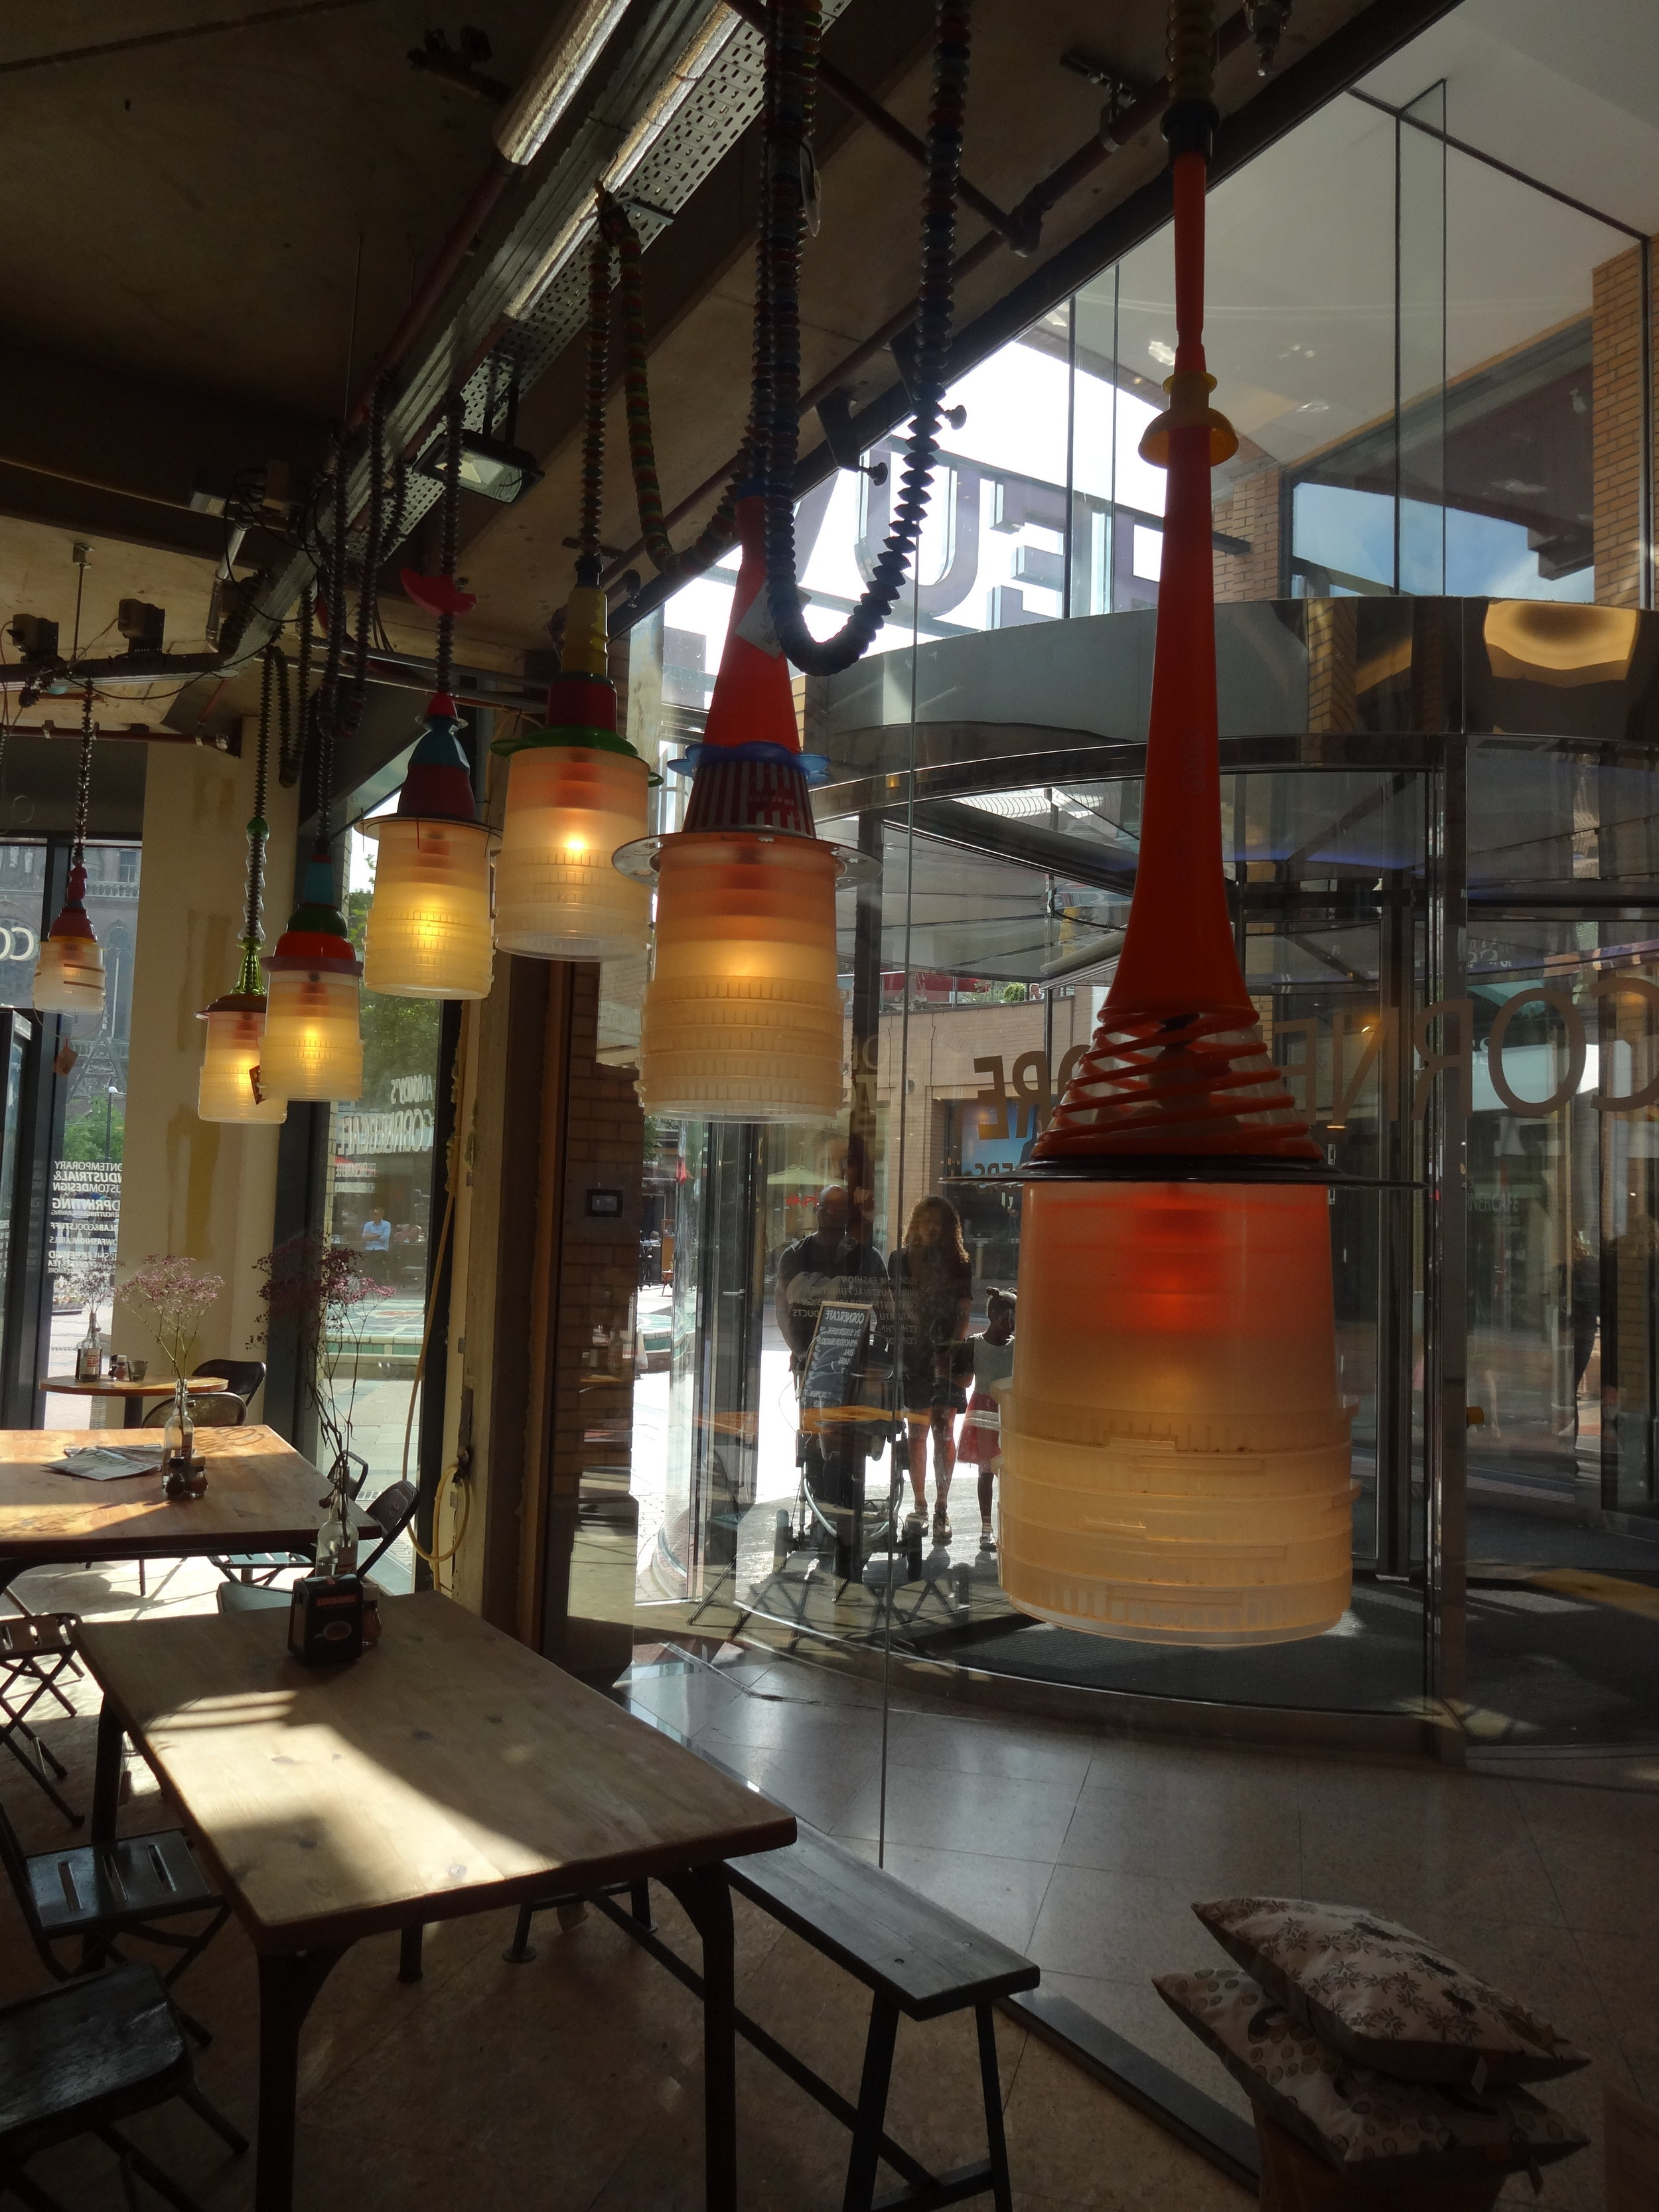 - The bucketlights create a great atmospere in the CornerCafe. Designed by Much2C, made from reused plastics.